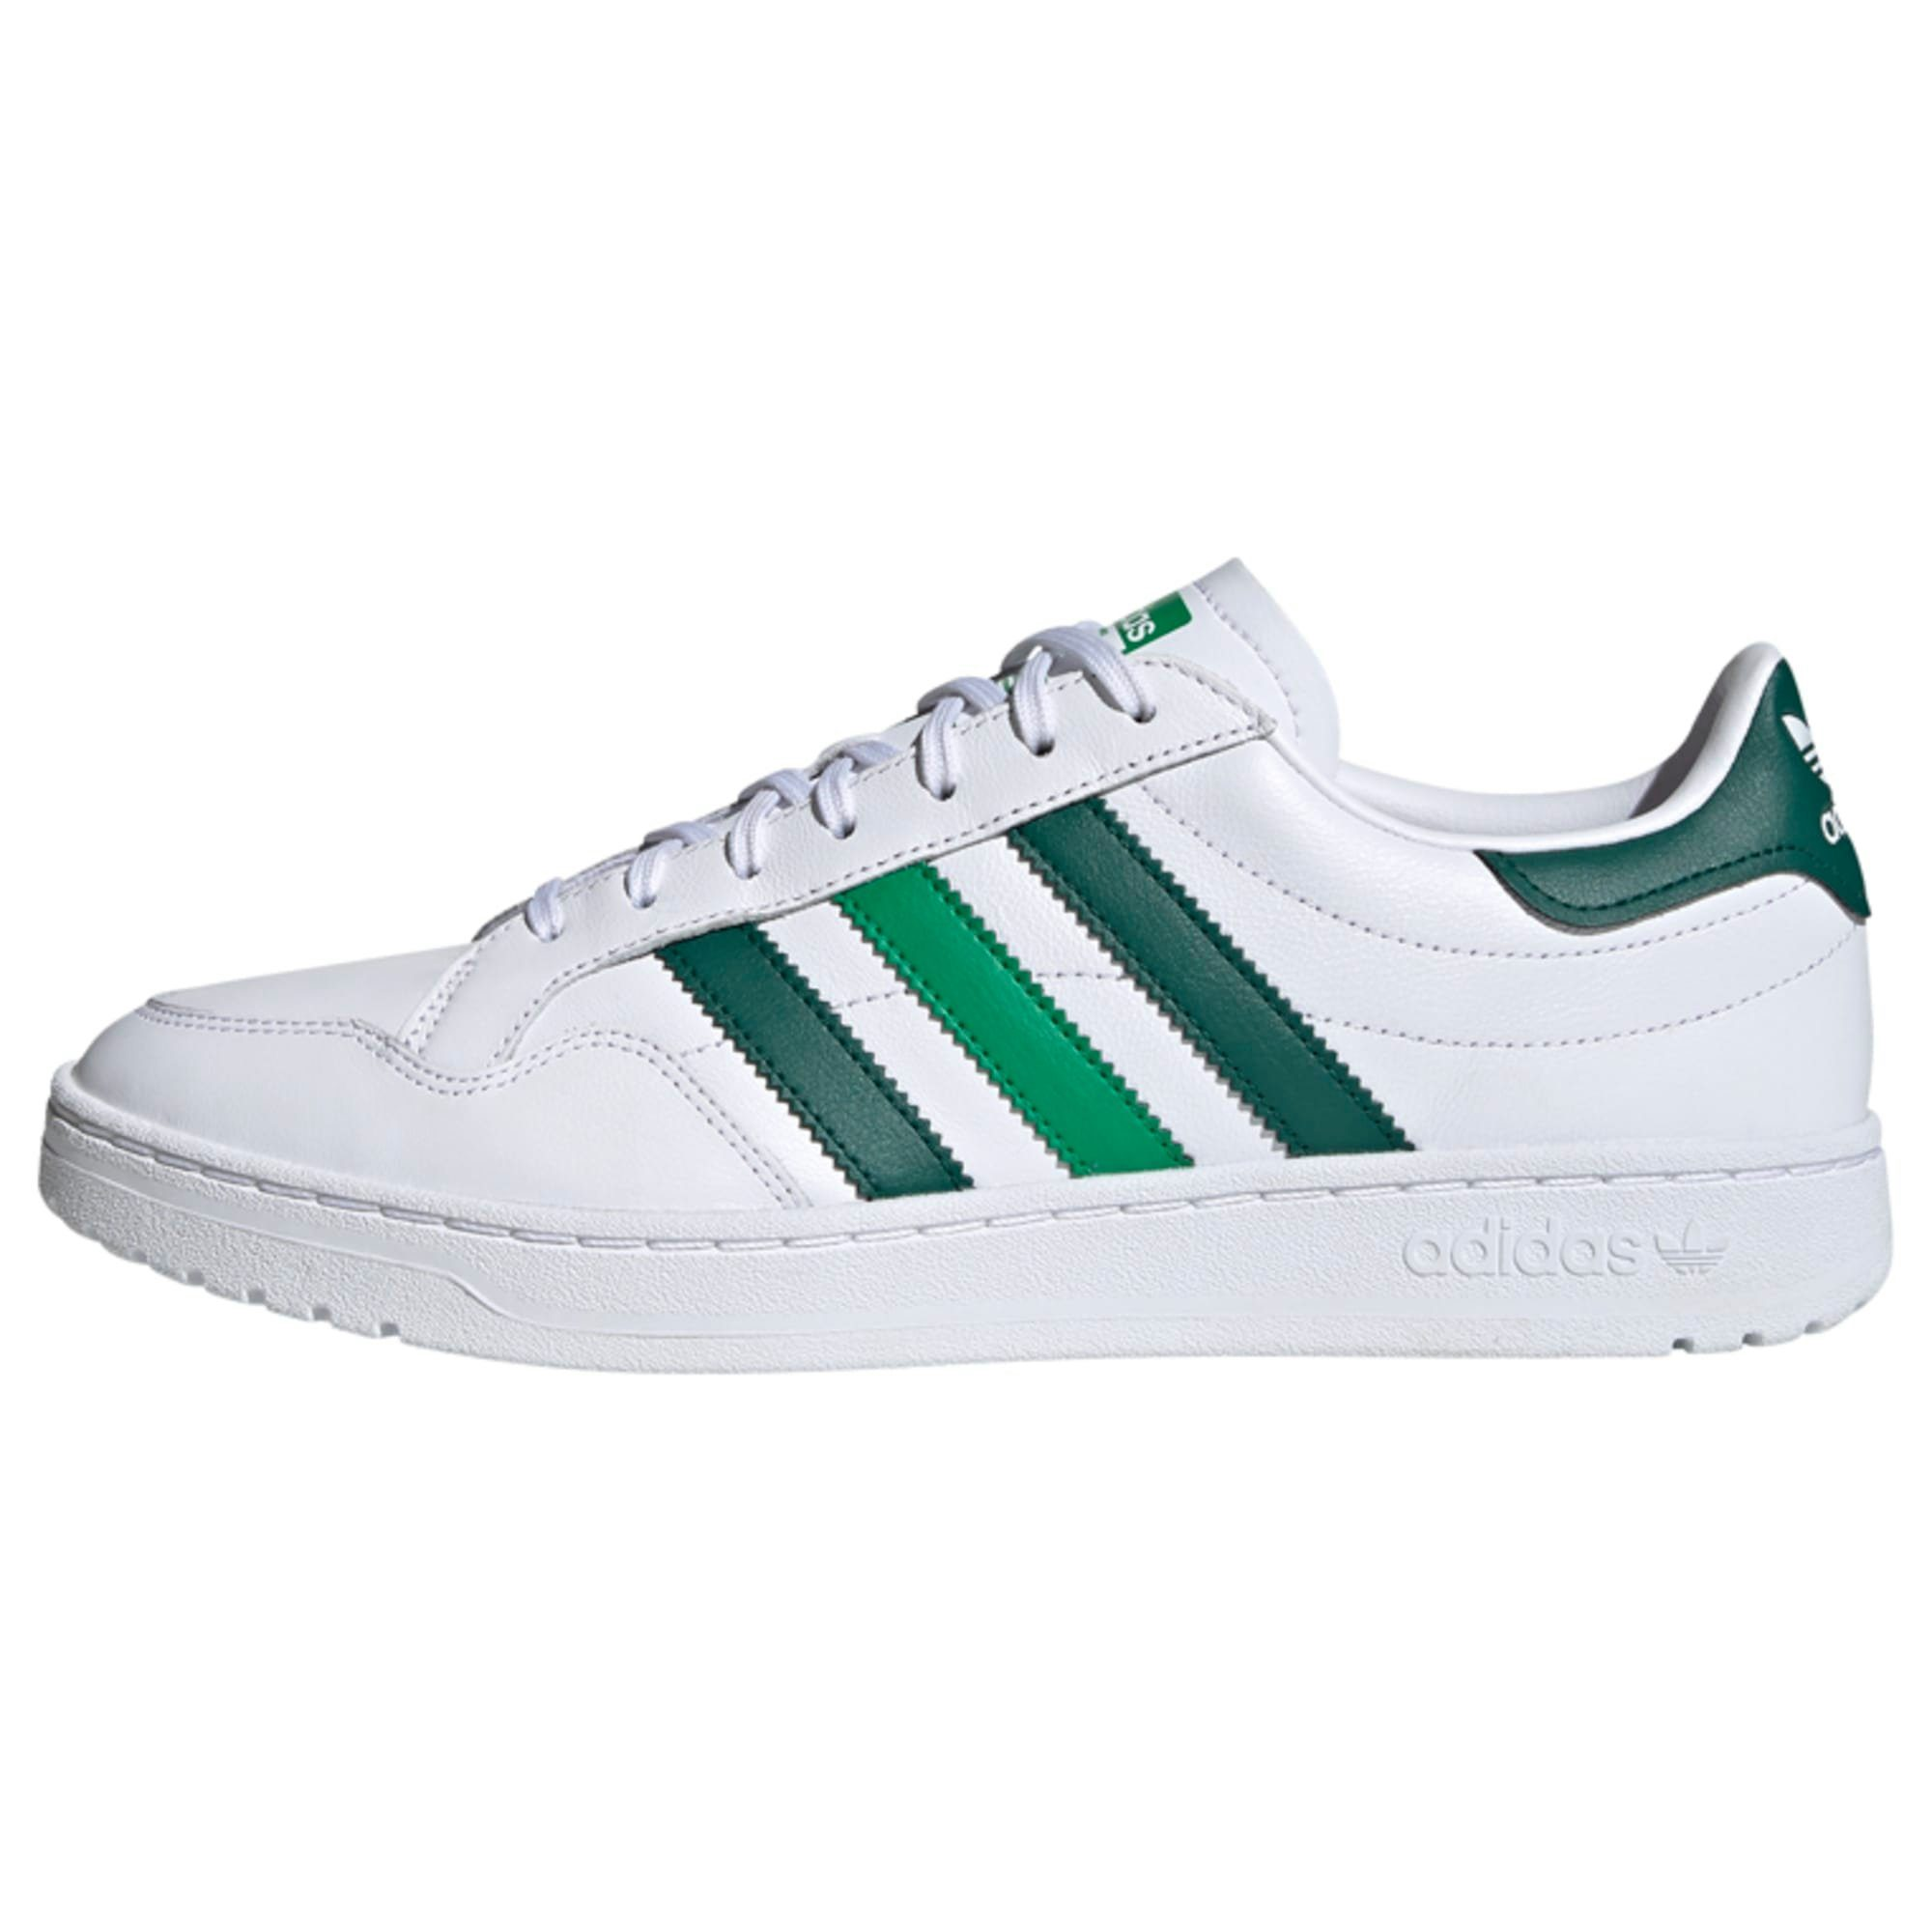 adidas Originals »TEAM COURT« Sneaker kaufen | OTTO